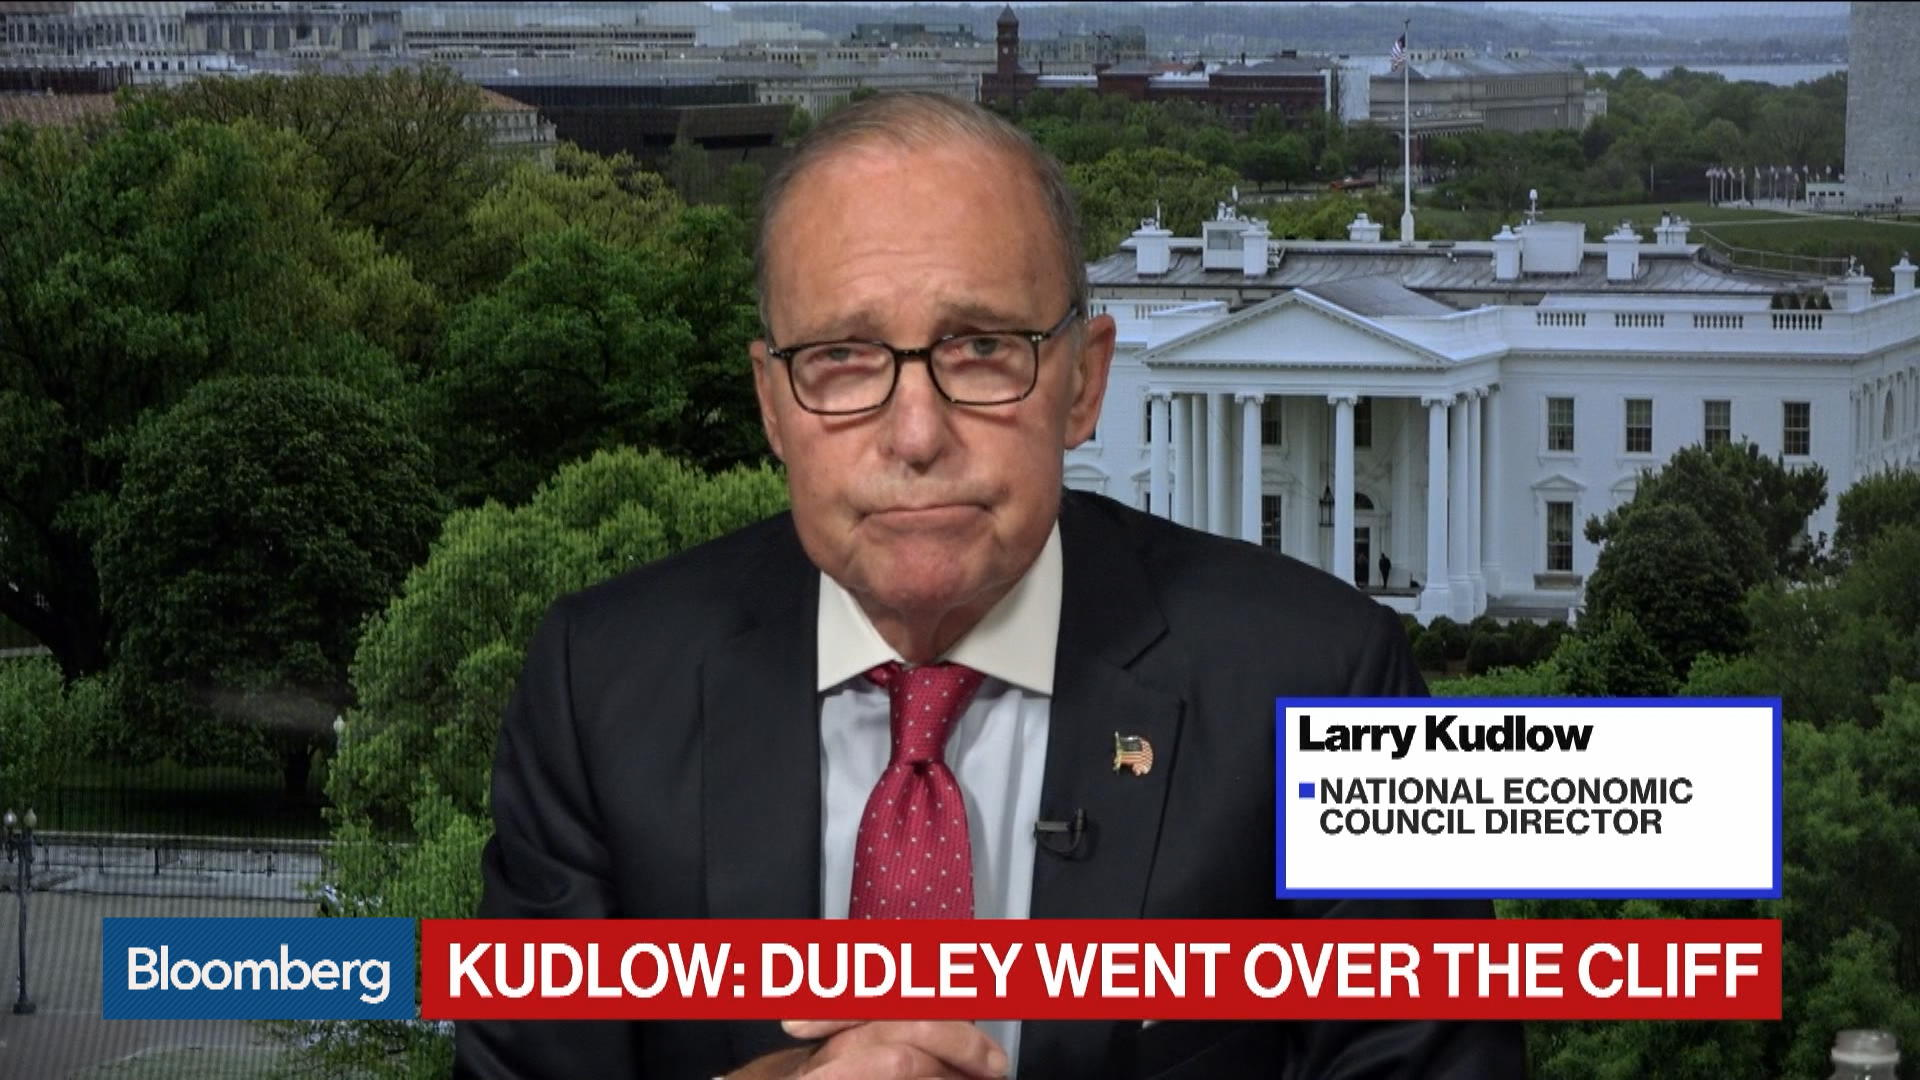 Larry Kudlow: Bill Dudley Went 'Over the Cliff' in Comments on Fed